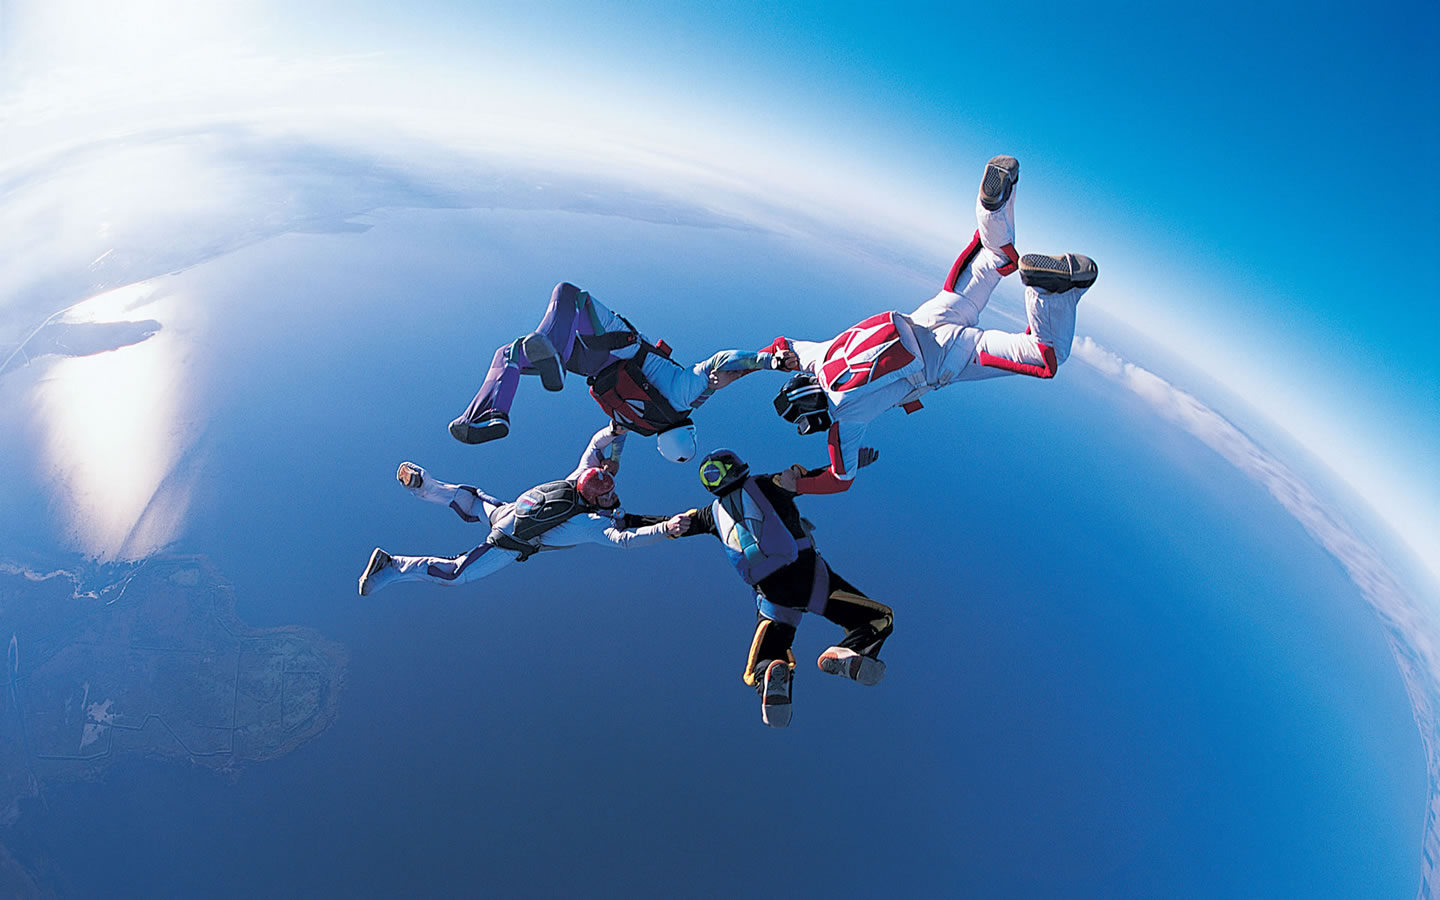 Extreme Sports Wallpapers: [46+] Extreme High Definition Wallpapers On WallpaperSafari